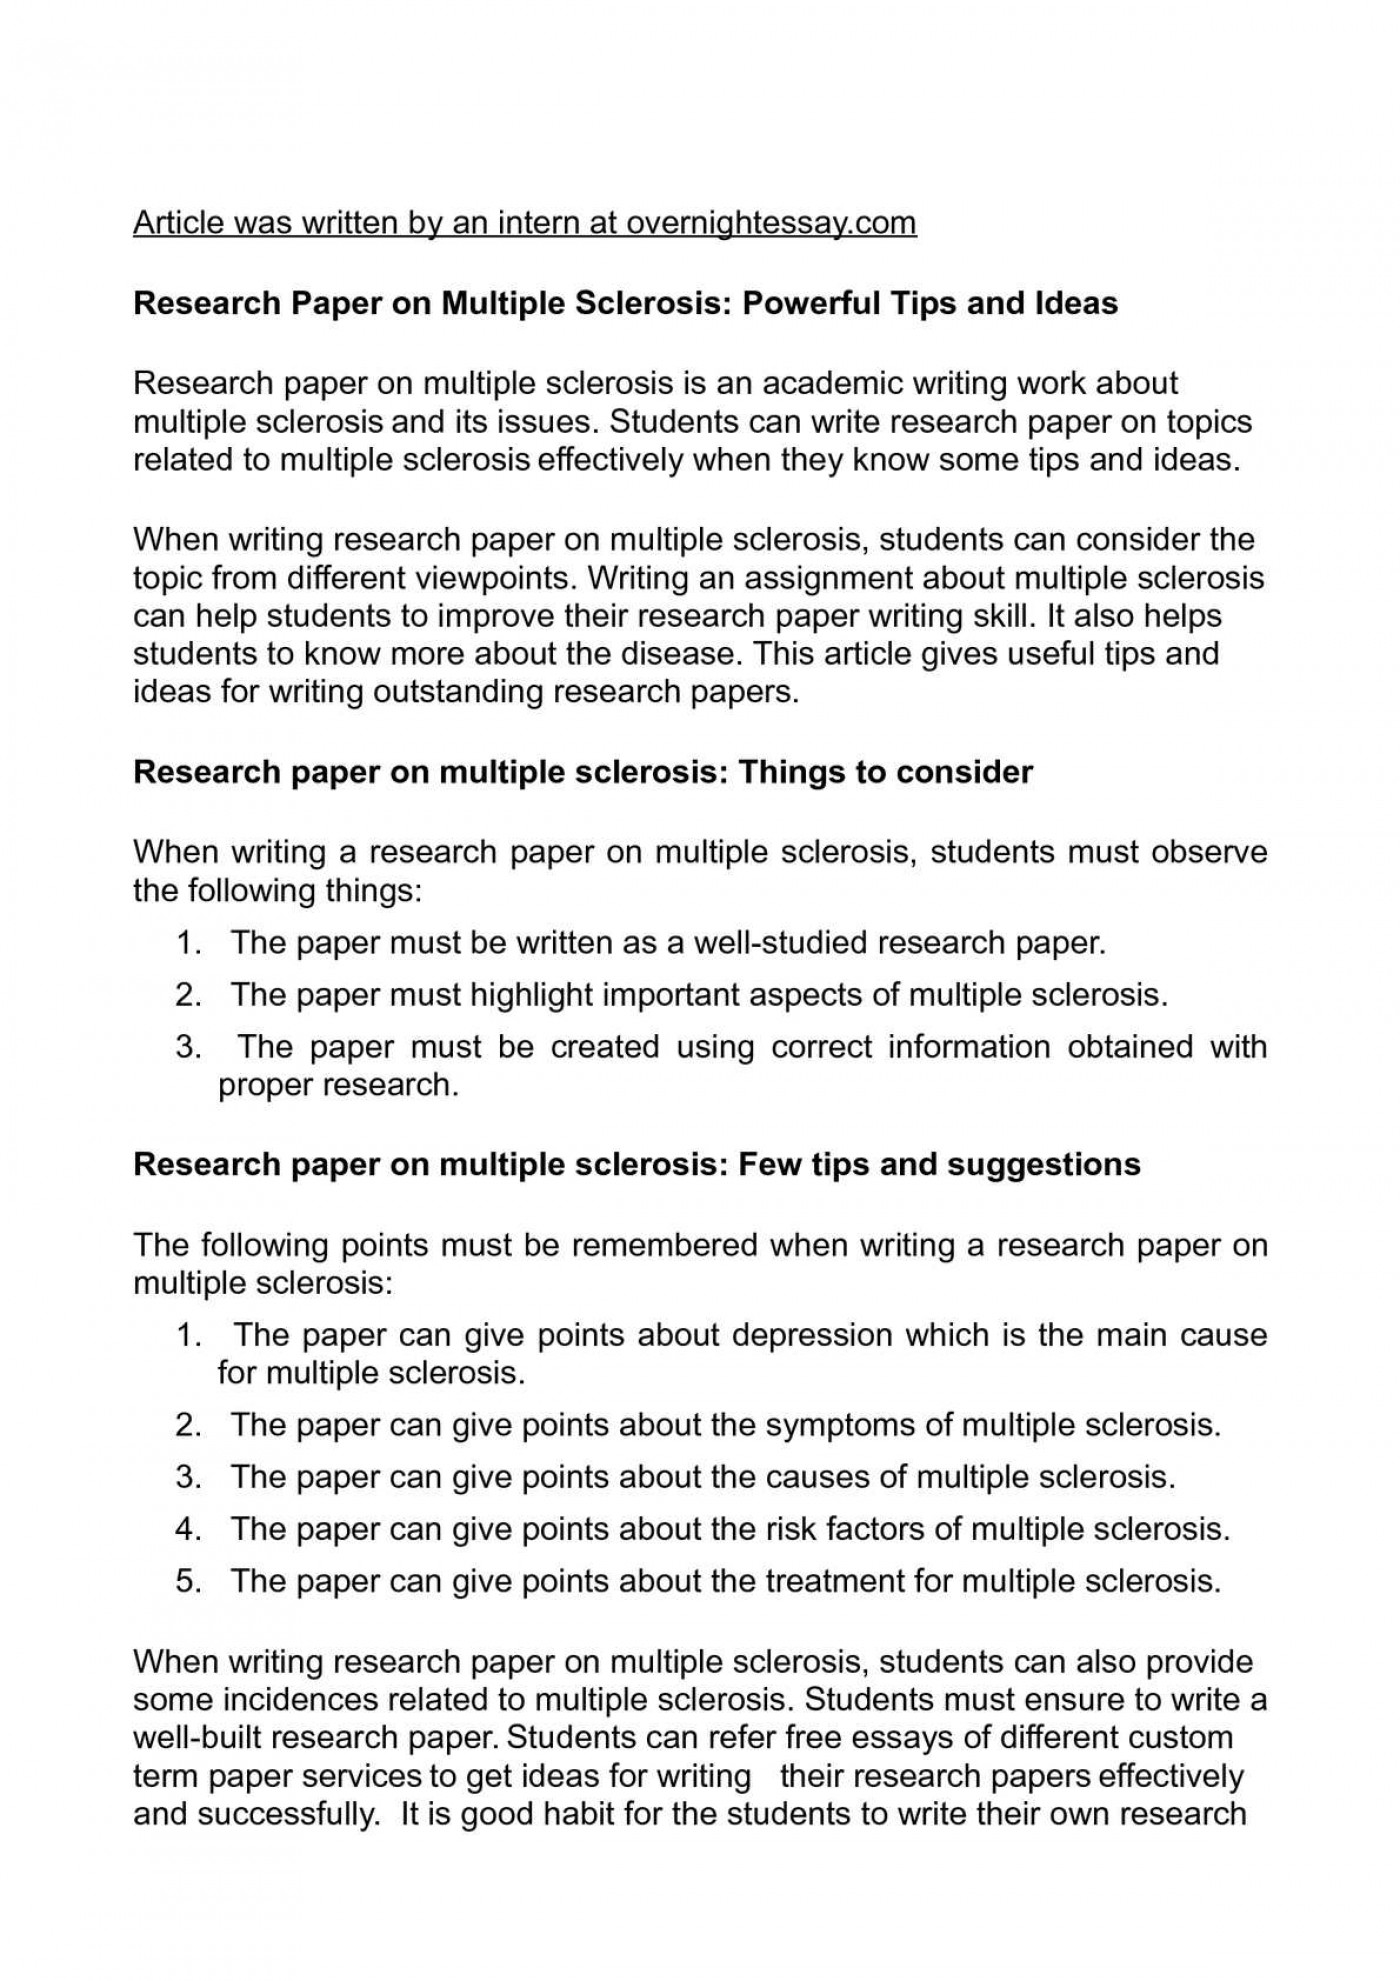 015 Research Paper How To Write Breathtaking Objectives An Abstract For English A Conclusion Apa 1400